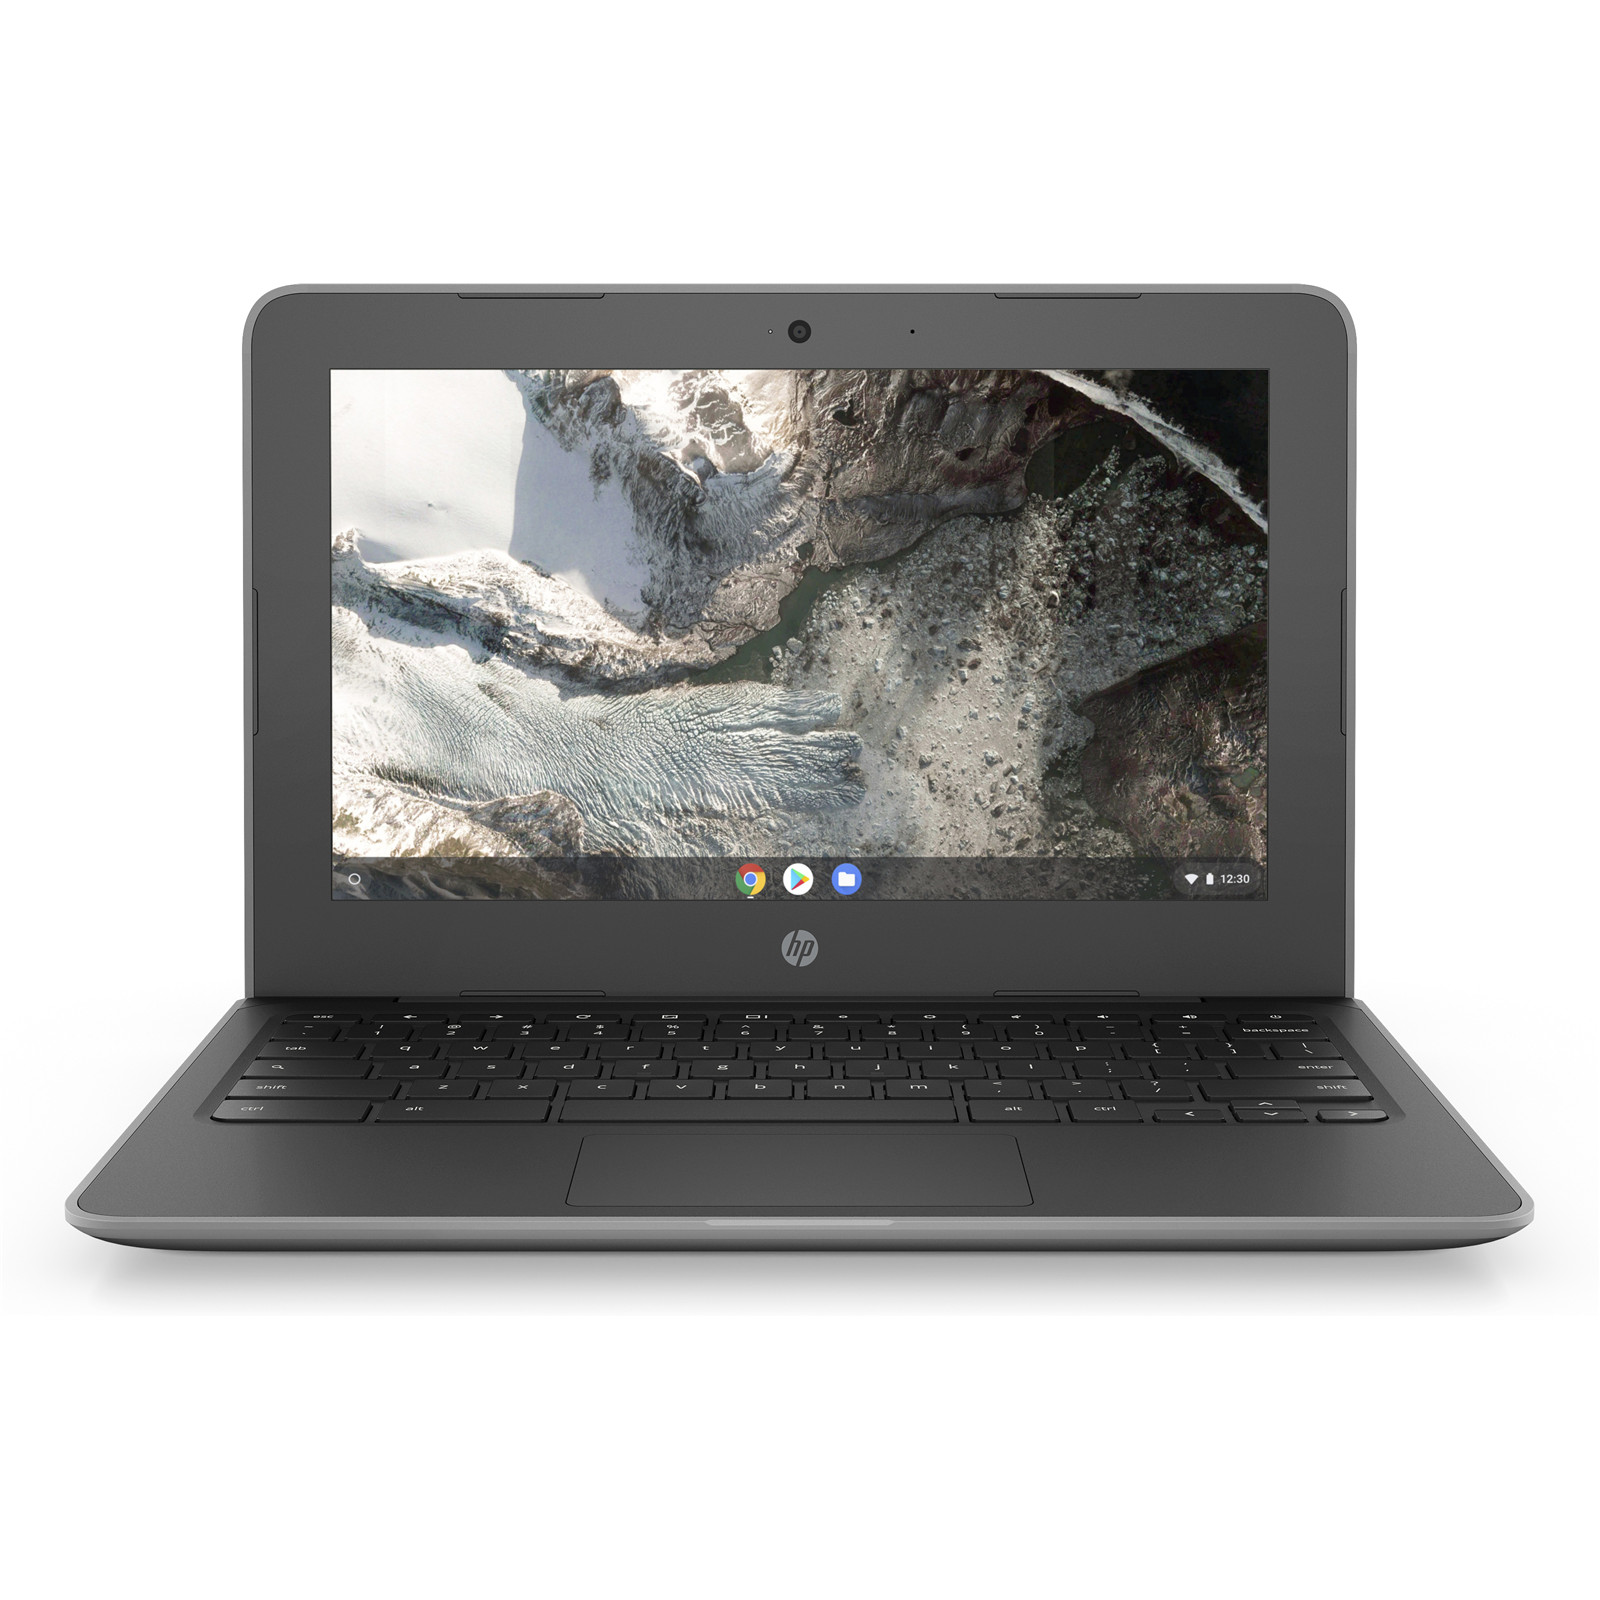 Chomebook Hp 11 G8 Procesador Amd A4 4gb Ram 32gb Chrome Os